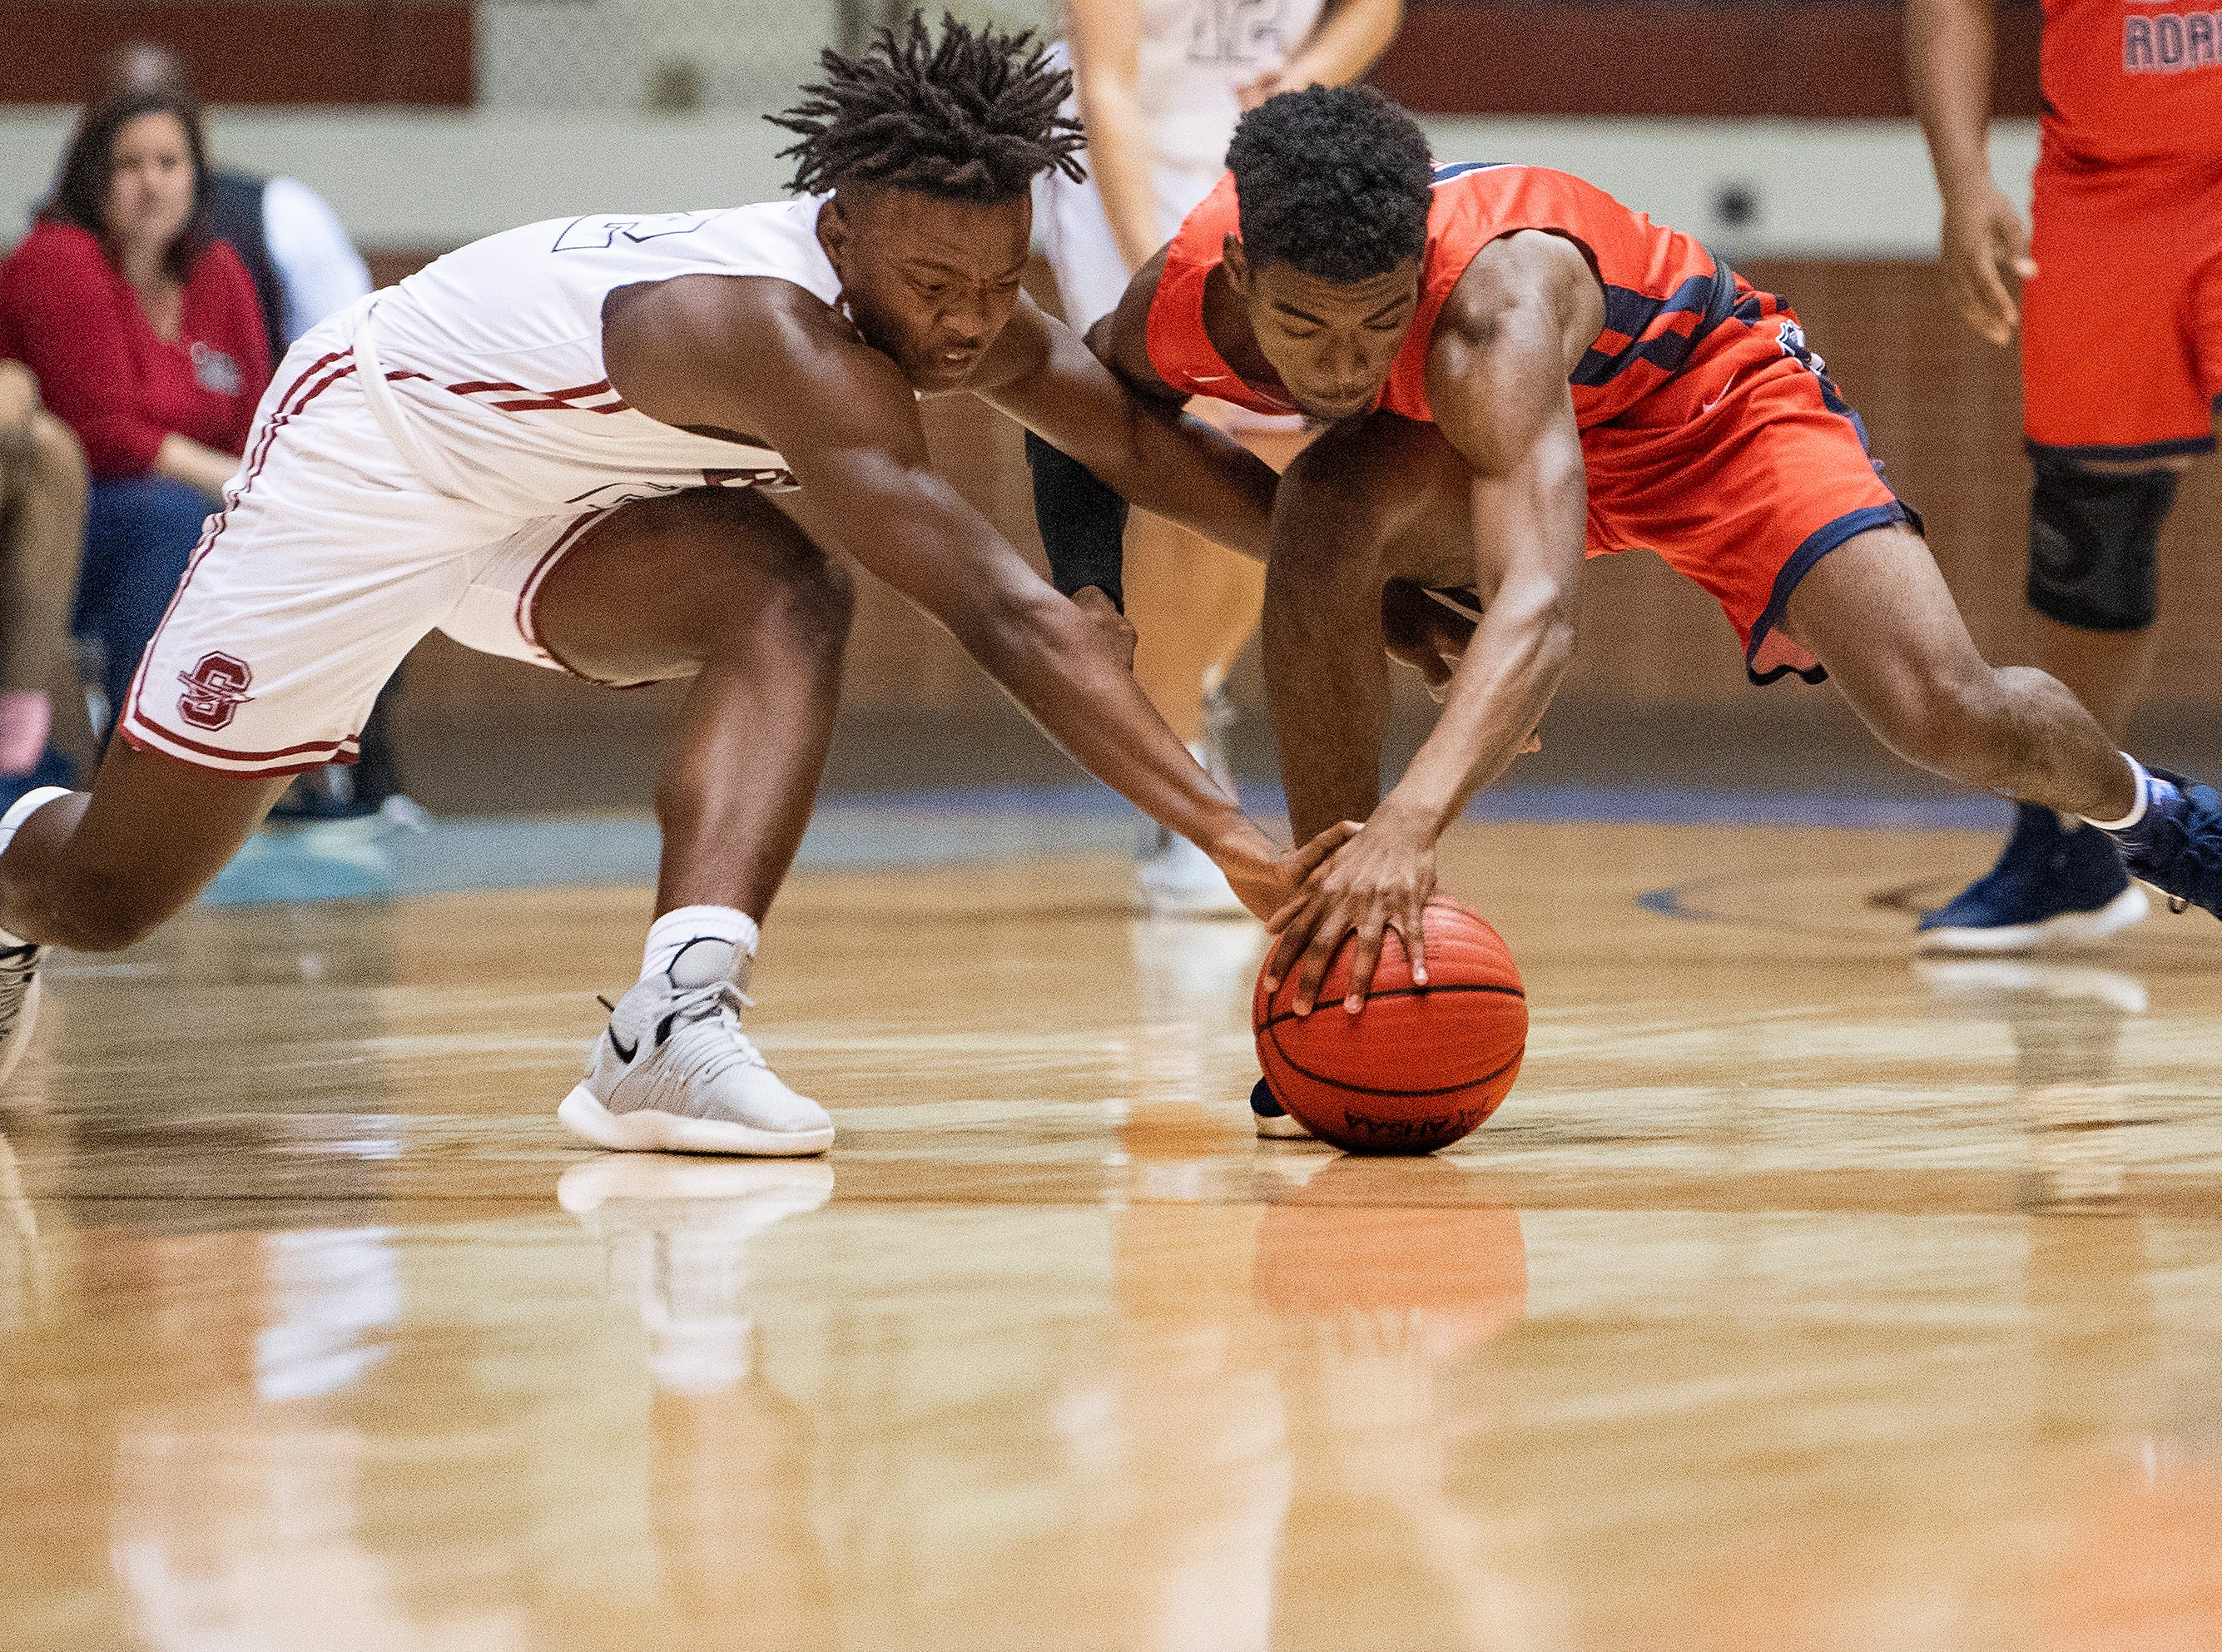 Slocomb's Jaylen Nobles and Pike Road's Jordan Davis chase a loose ball during AHSAA regional action Garrett Coliseum in Montgomery, Ala., on Saturday February 16, 2019.